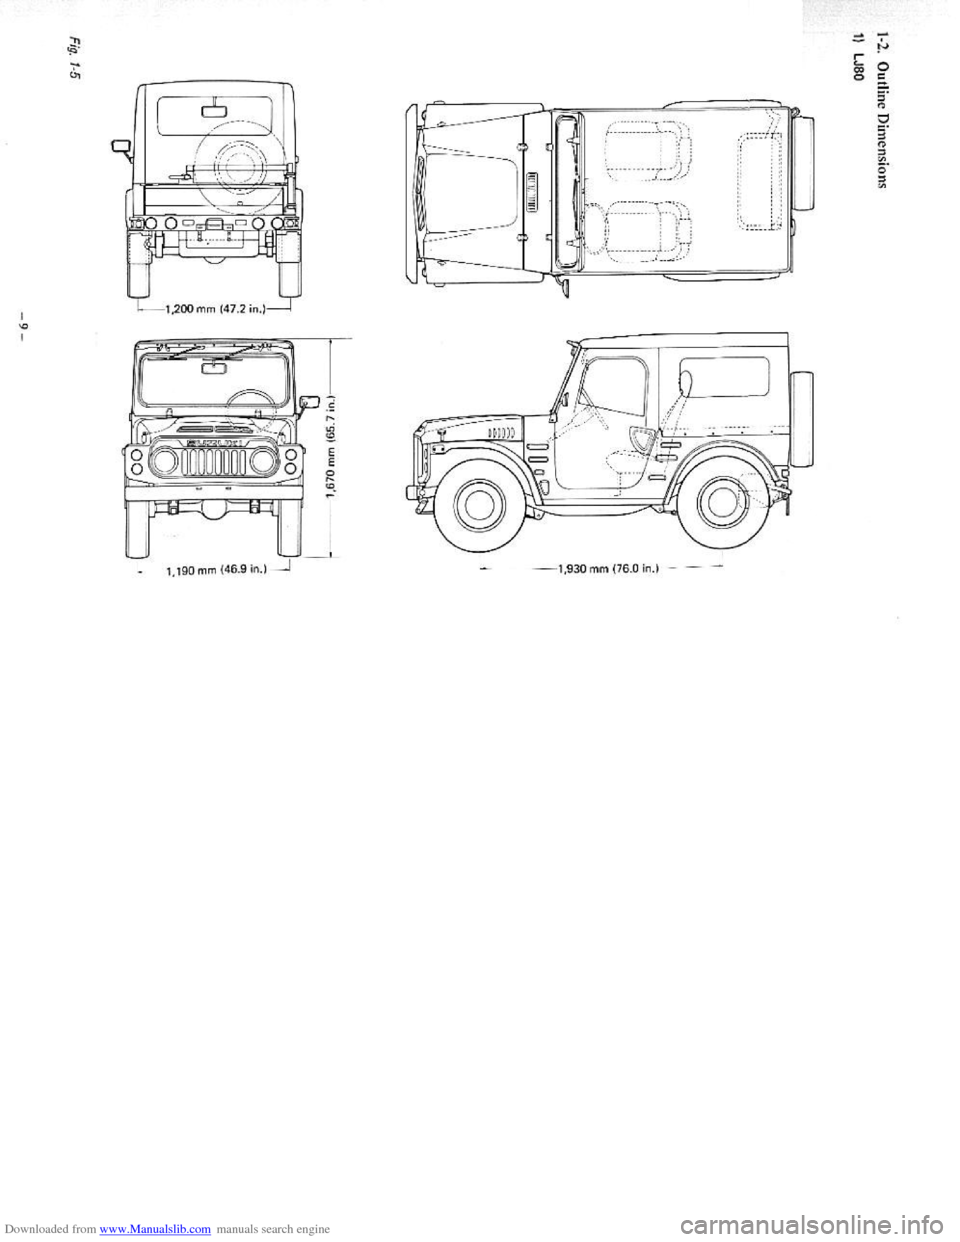 SUZUKI LJ80 1975 1.G Service Workshop Manual